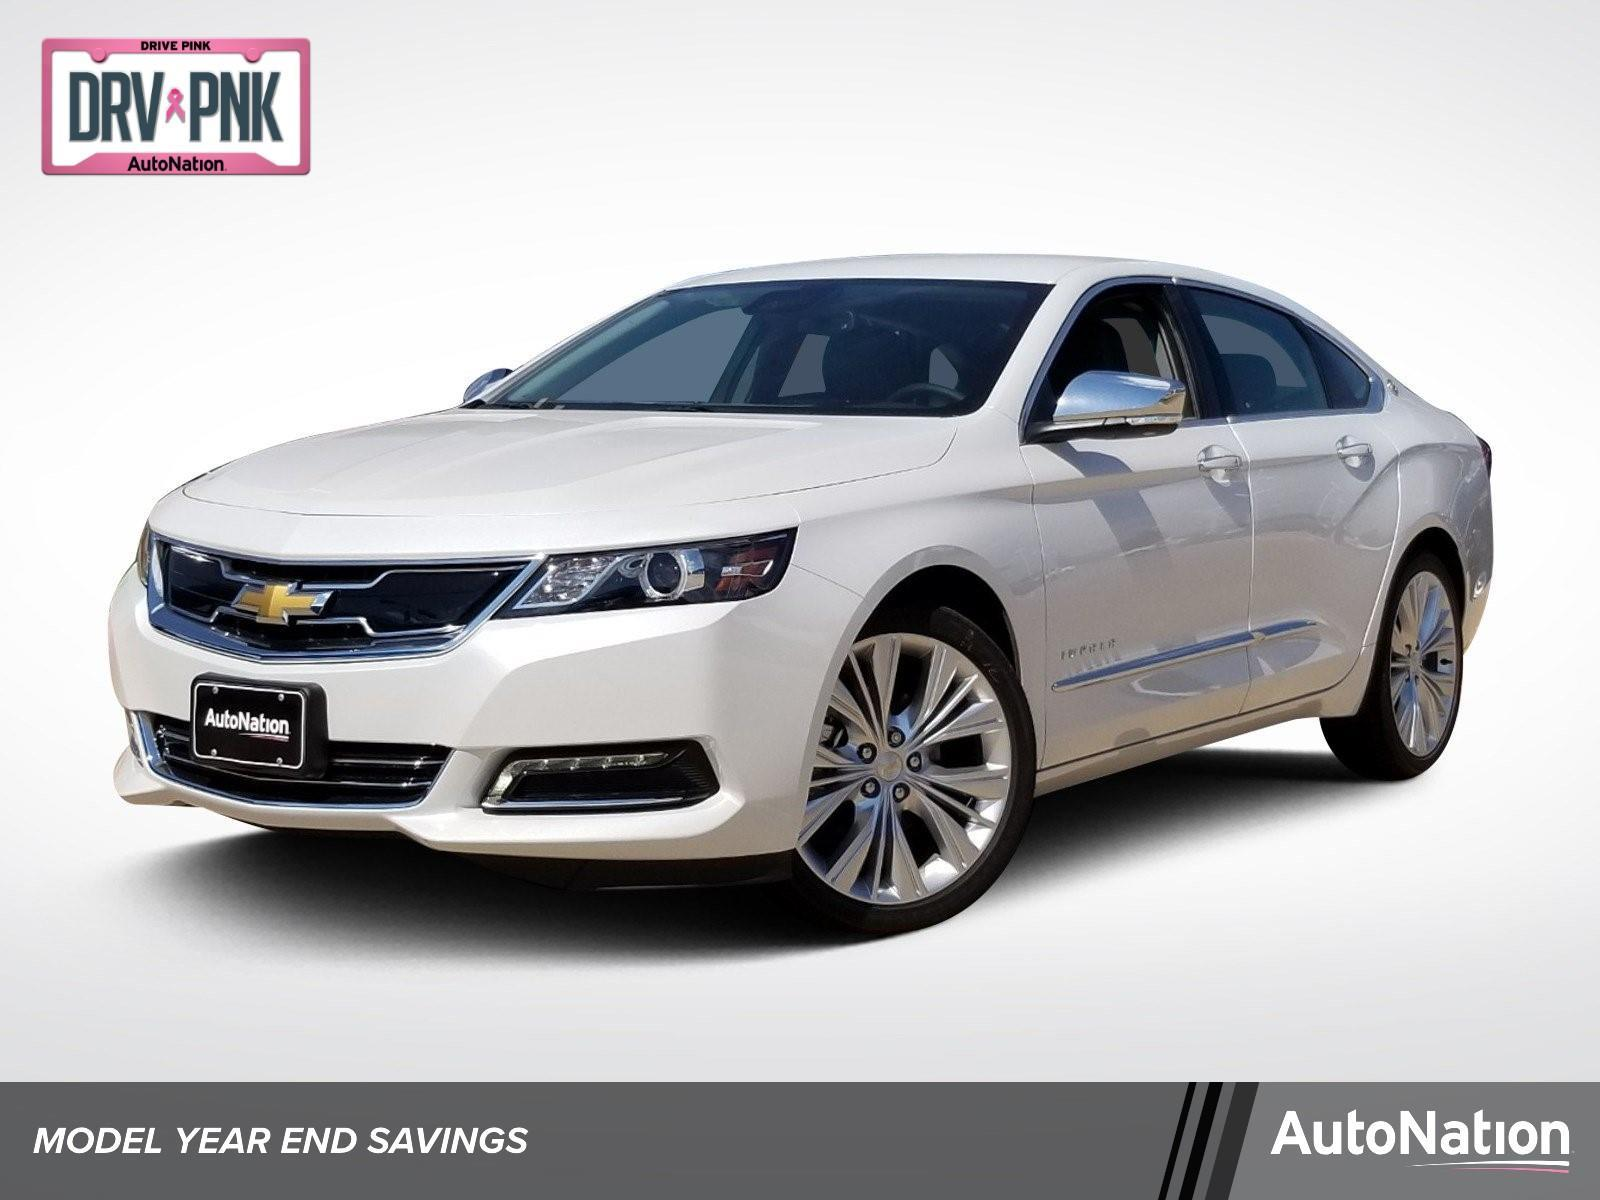 Autonation Amarillo Tx >> 1g1105s32ku144257 2019 Chevrolet Impala For Sale In Amarillo